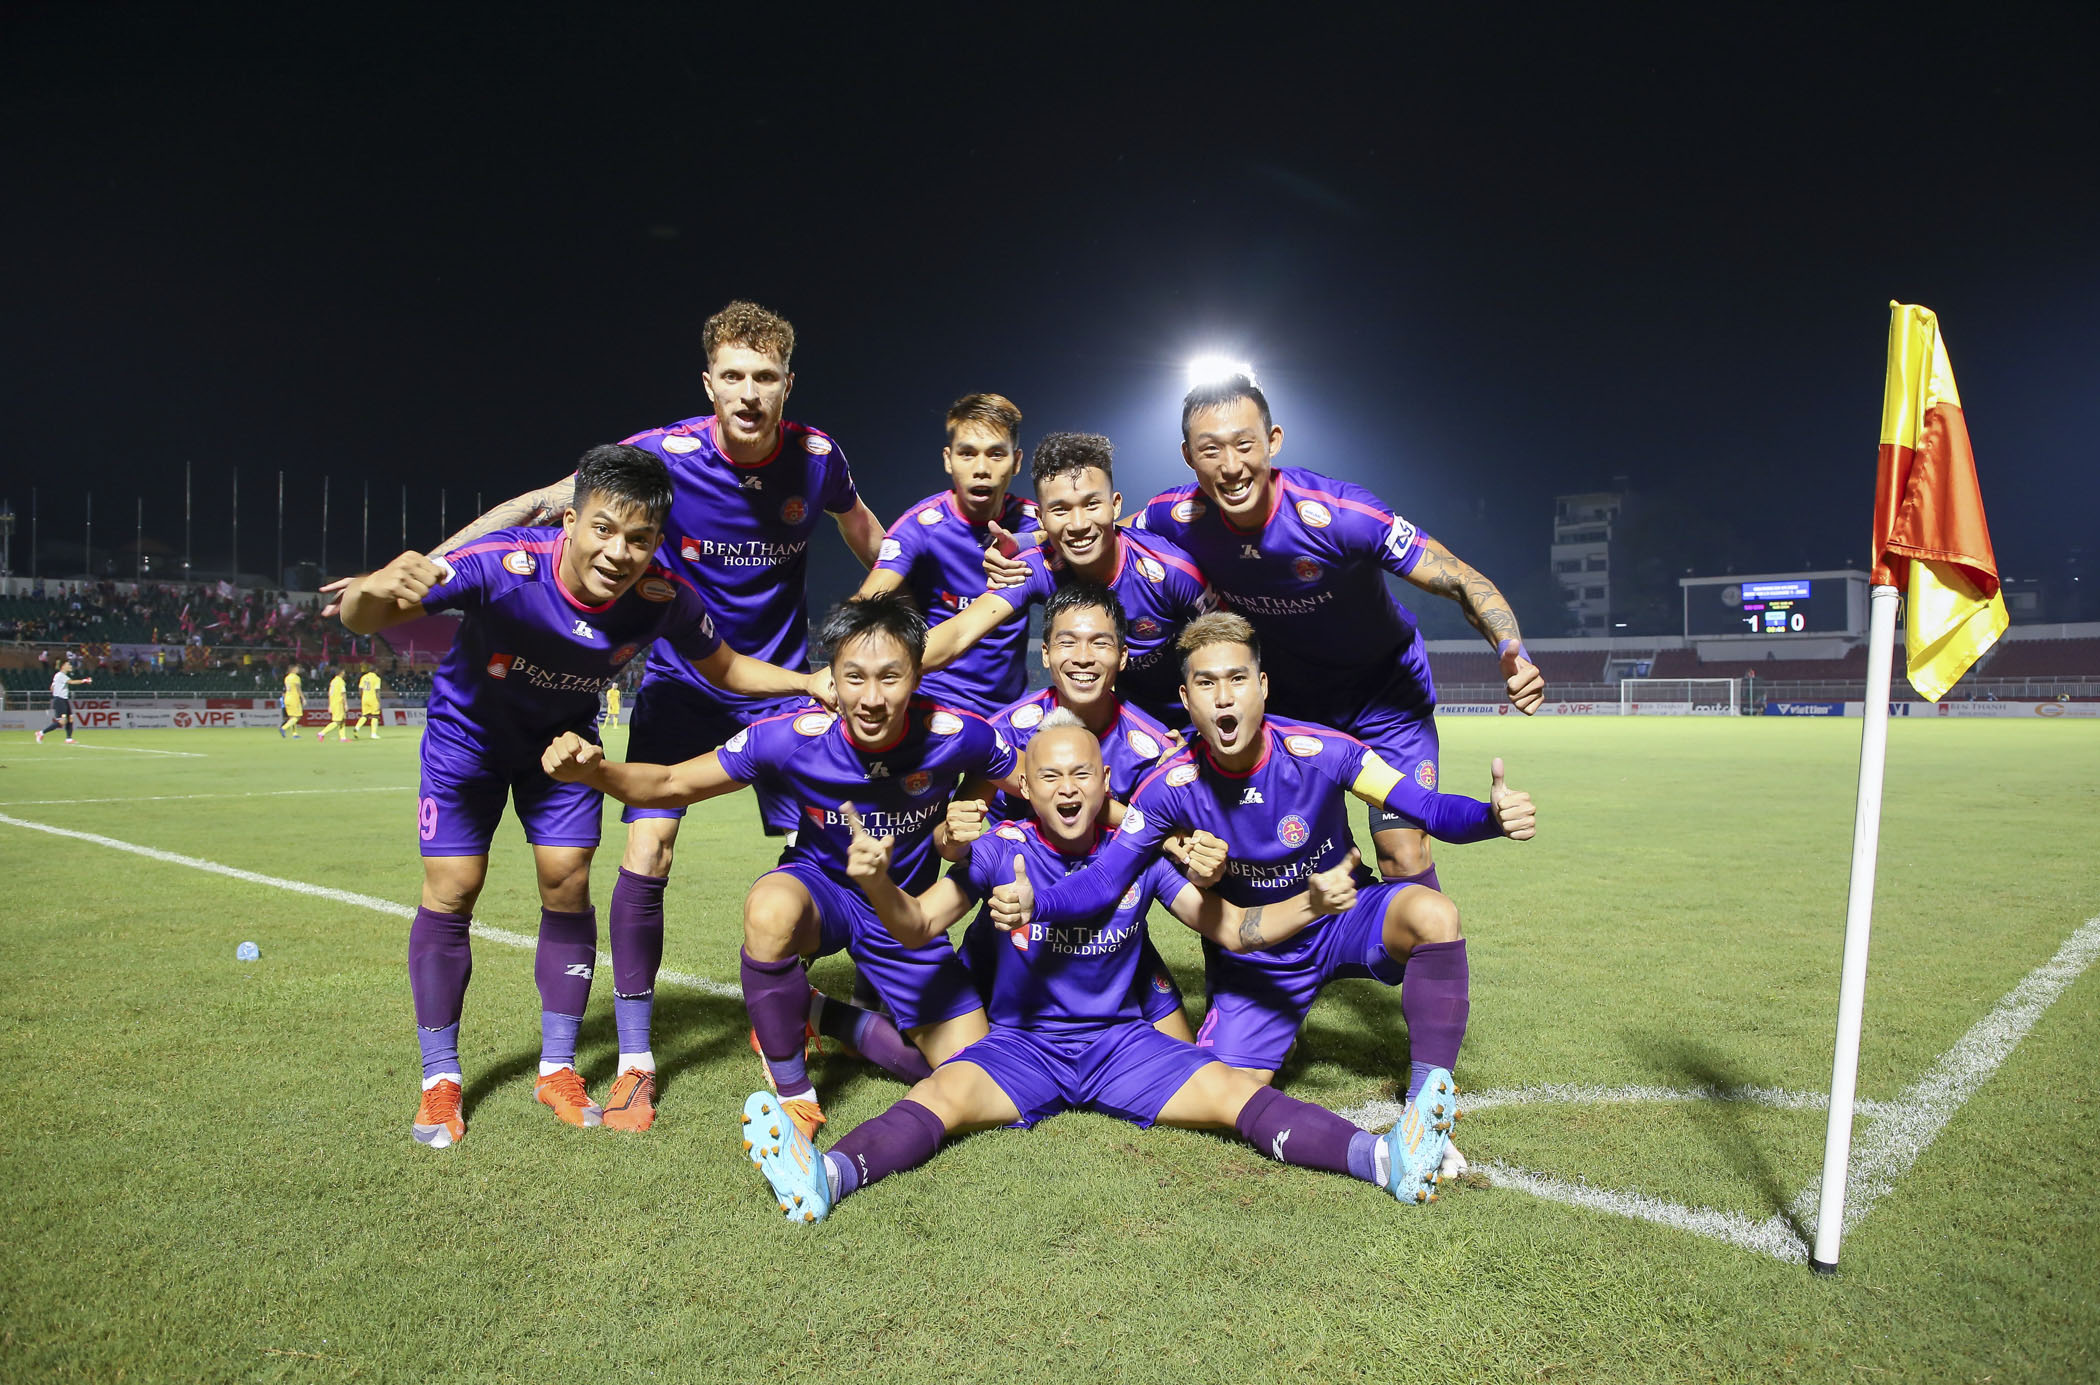 How a starless football club rose to top of Vietnam's V-League 1